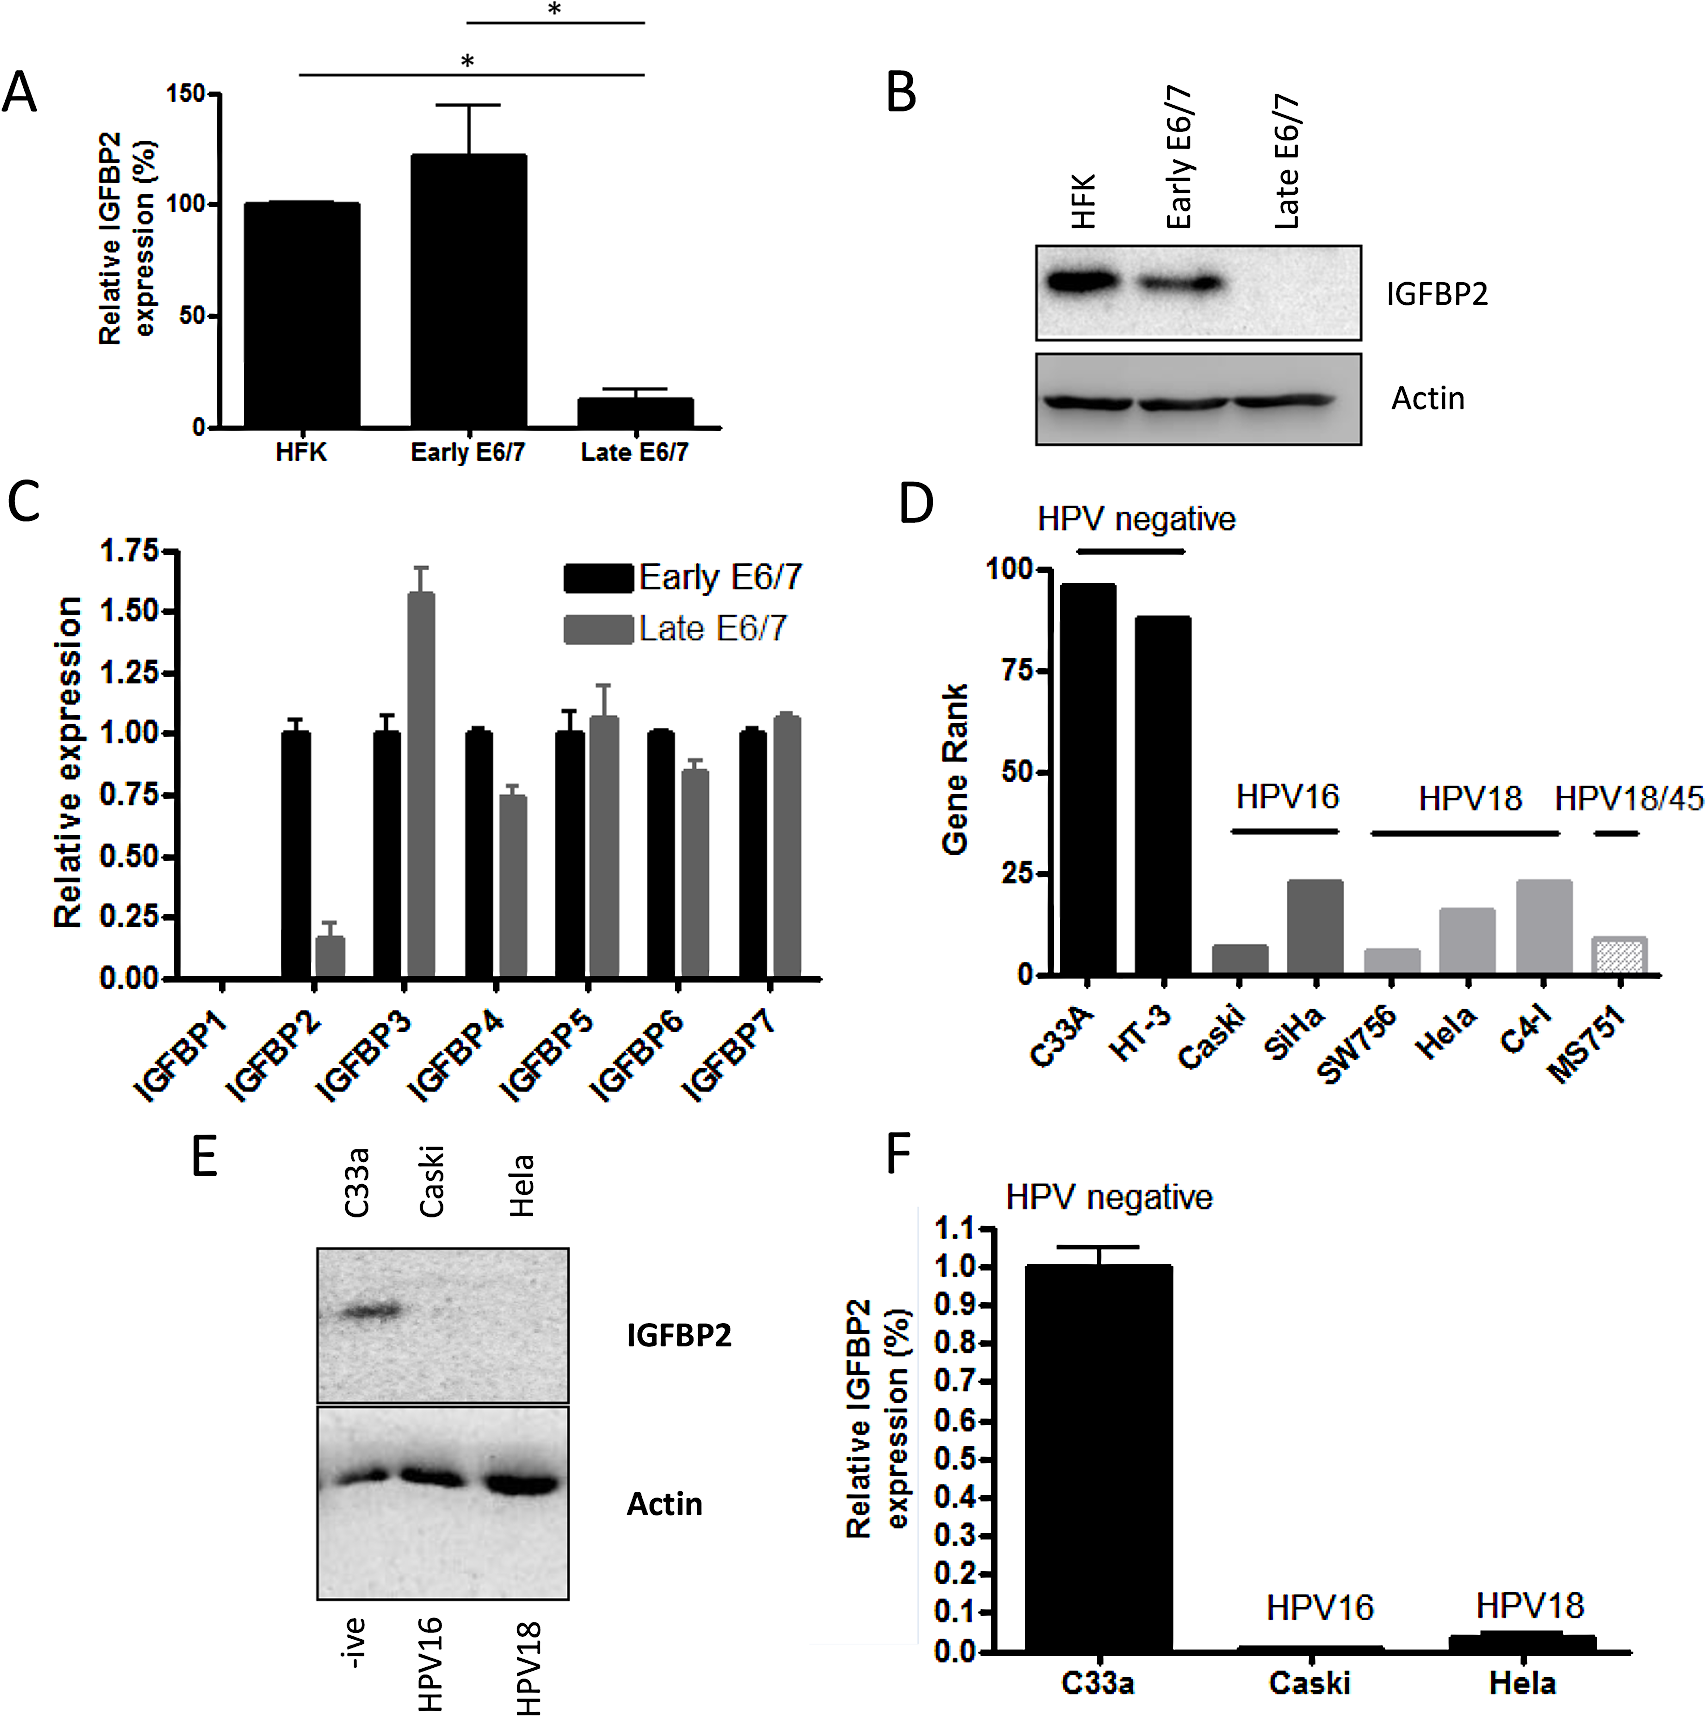 IGFBP2 is transcriptionally repressed in late-passage E6/7-HFKs and HPV positive cervical cancer cell lines.